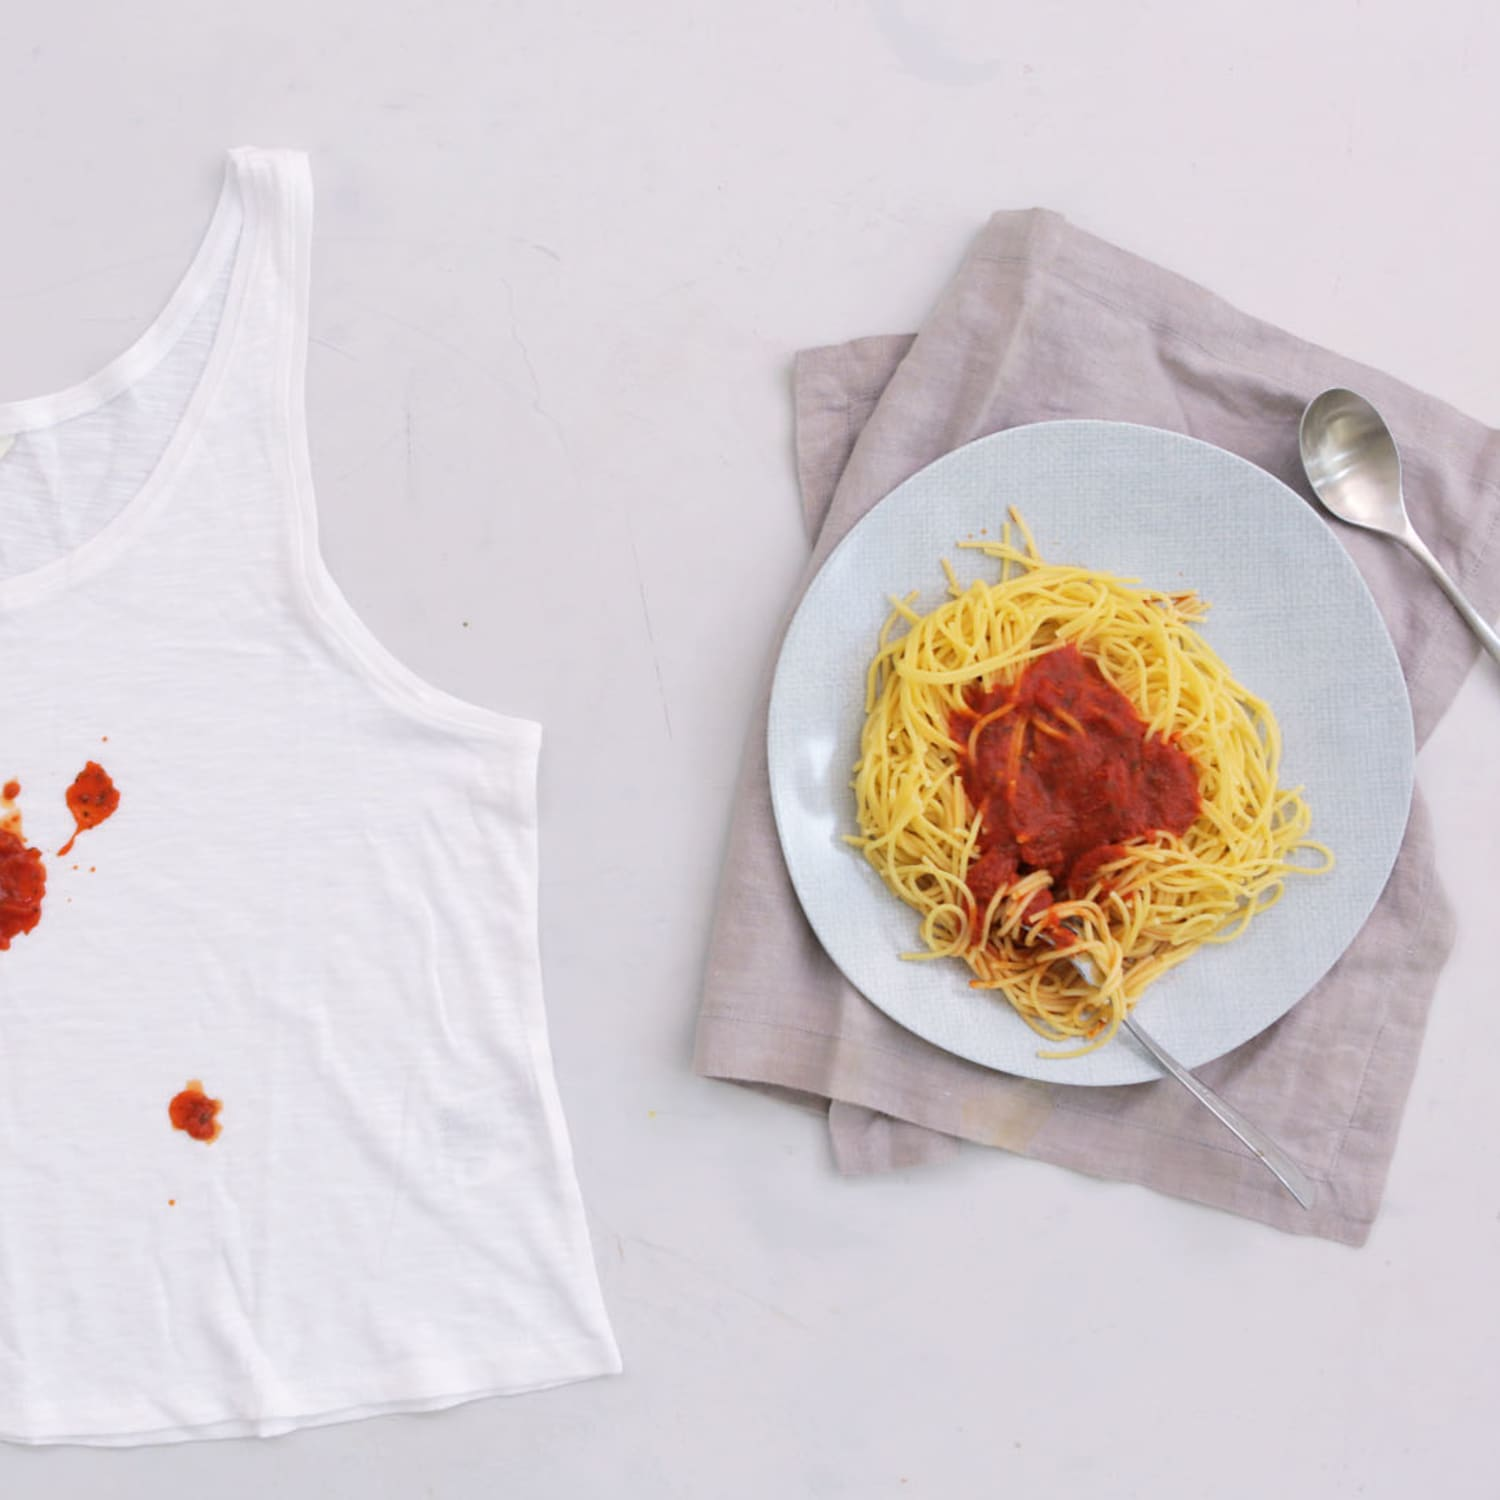 How To Remove Tomato Sauce Stains From Clothes 3 Home Hacks